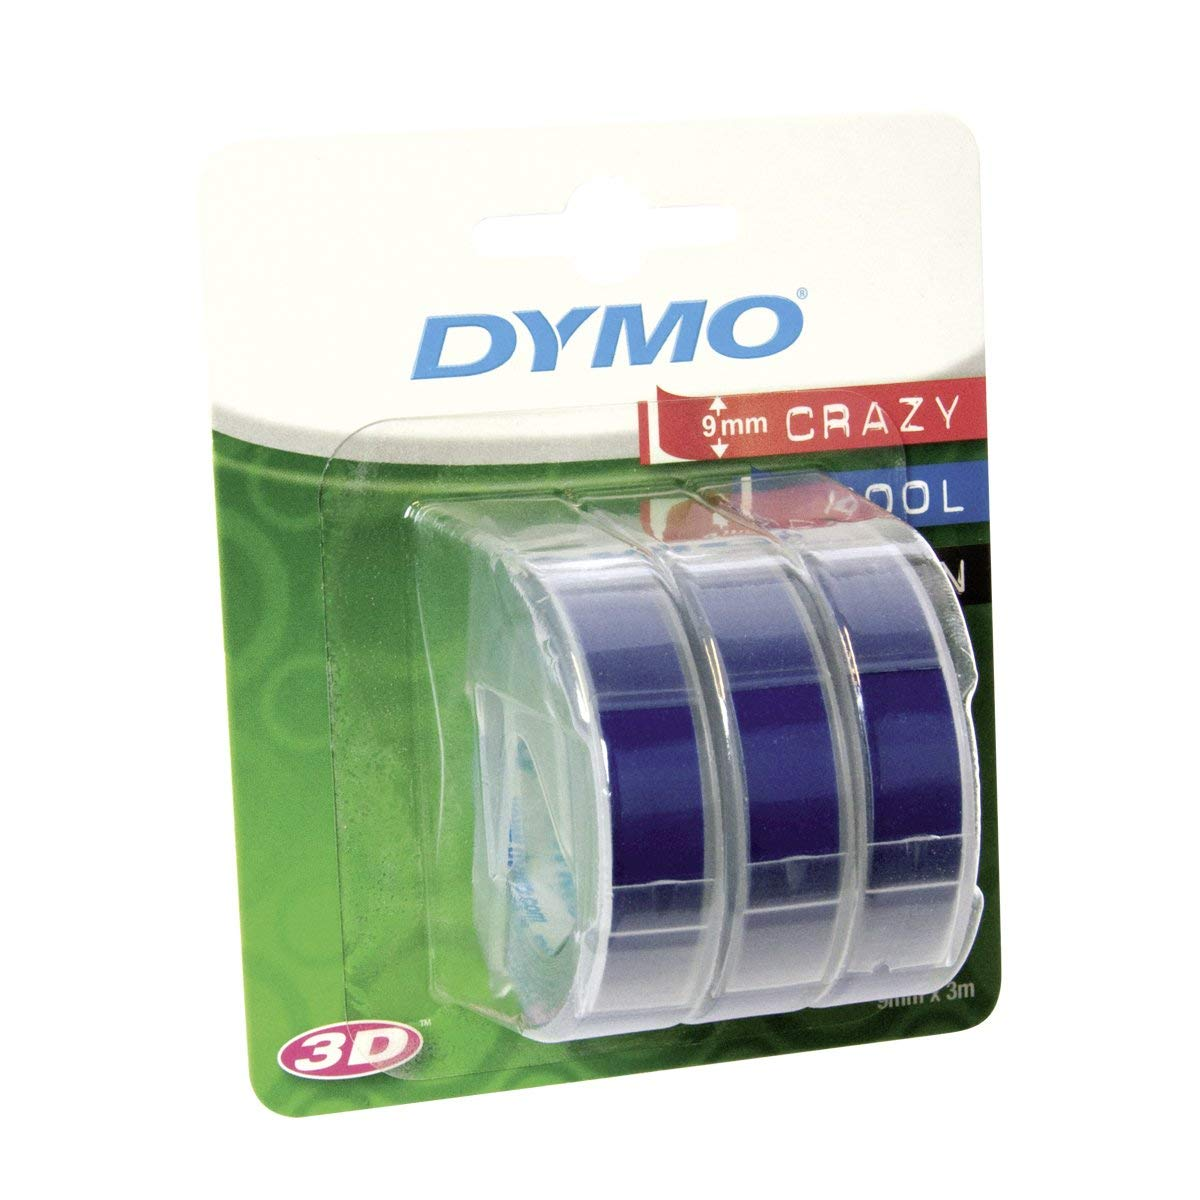 Dymo S0847740 3D Embossing Tape 9mm x 3m - White On Blue (pkt/3pcs)